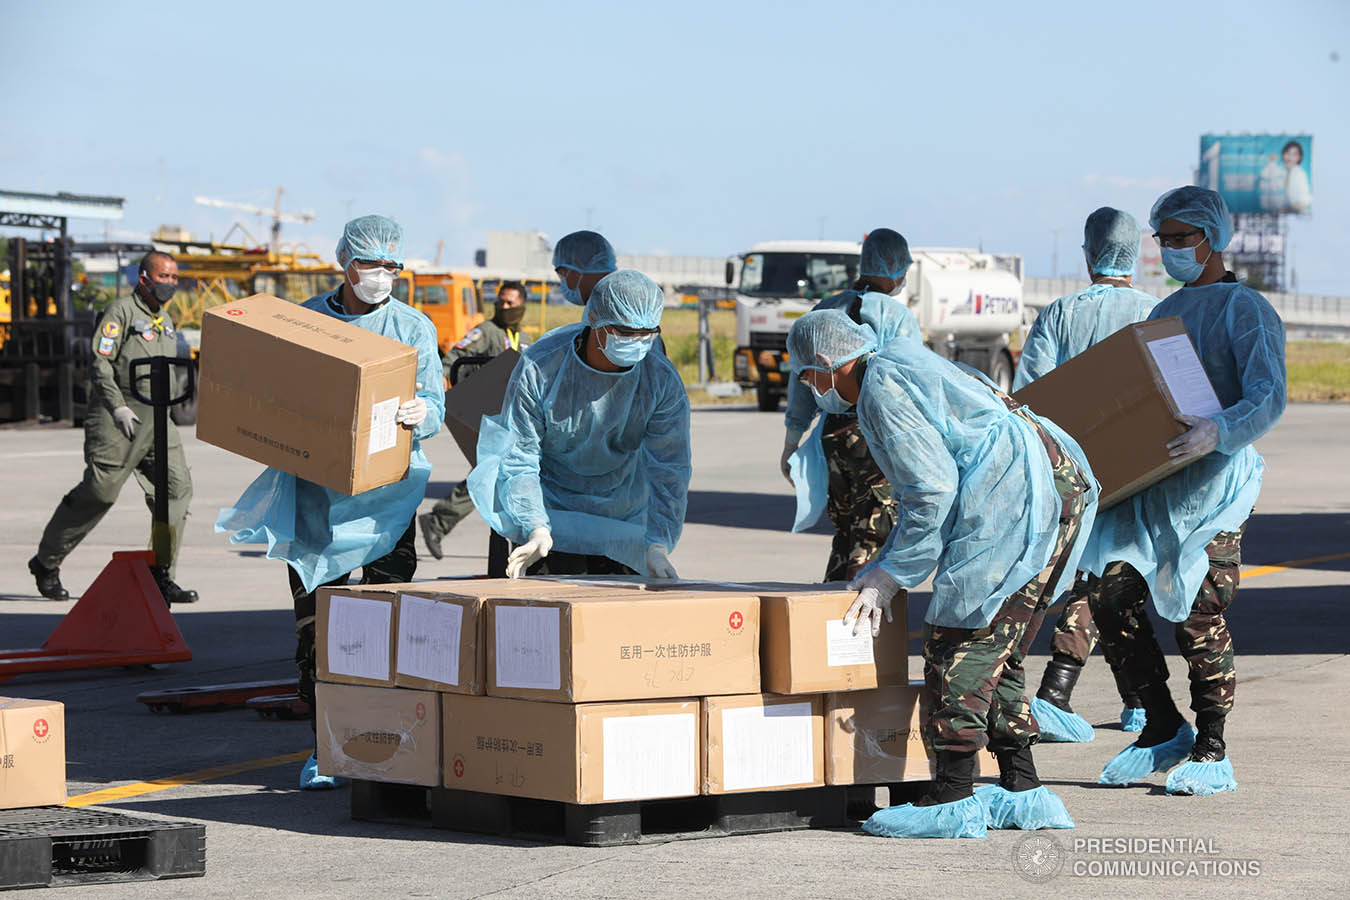 Thousands of aid packages donated by the People's Republic of China are unloaded at the Villamor Air Base in Pasay City on March 21, 2020. The donation includes assorted medical supplies, personal protective equipment, and testing kits for coronavirus. TOTO LOZANO/PRESIDENTIAL PHOTO